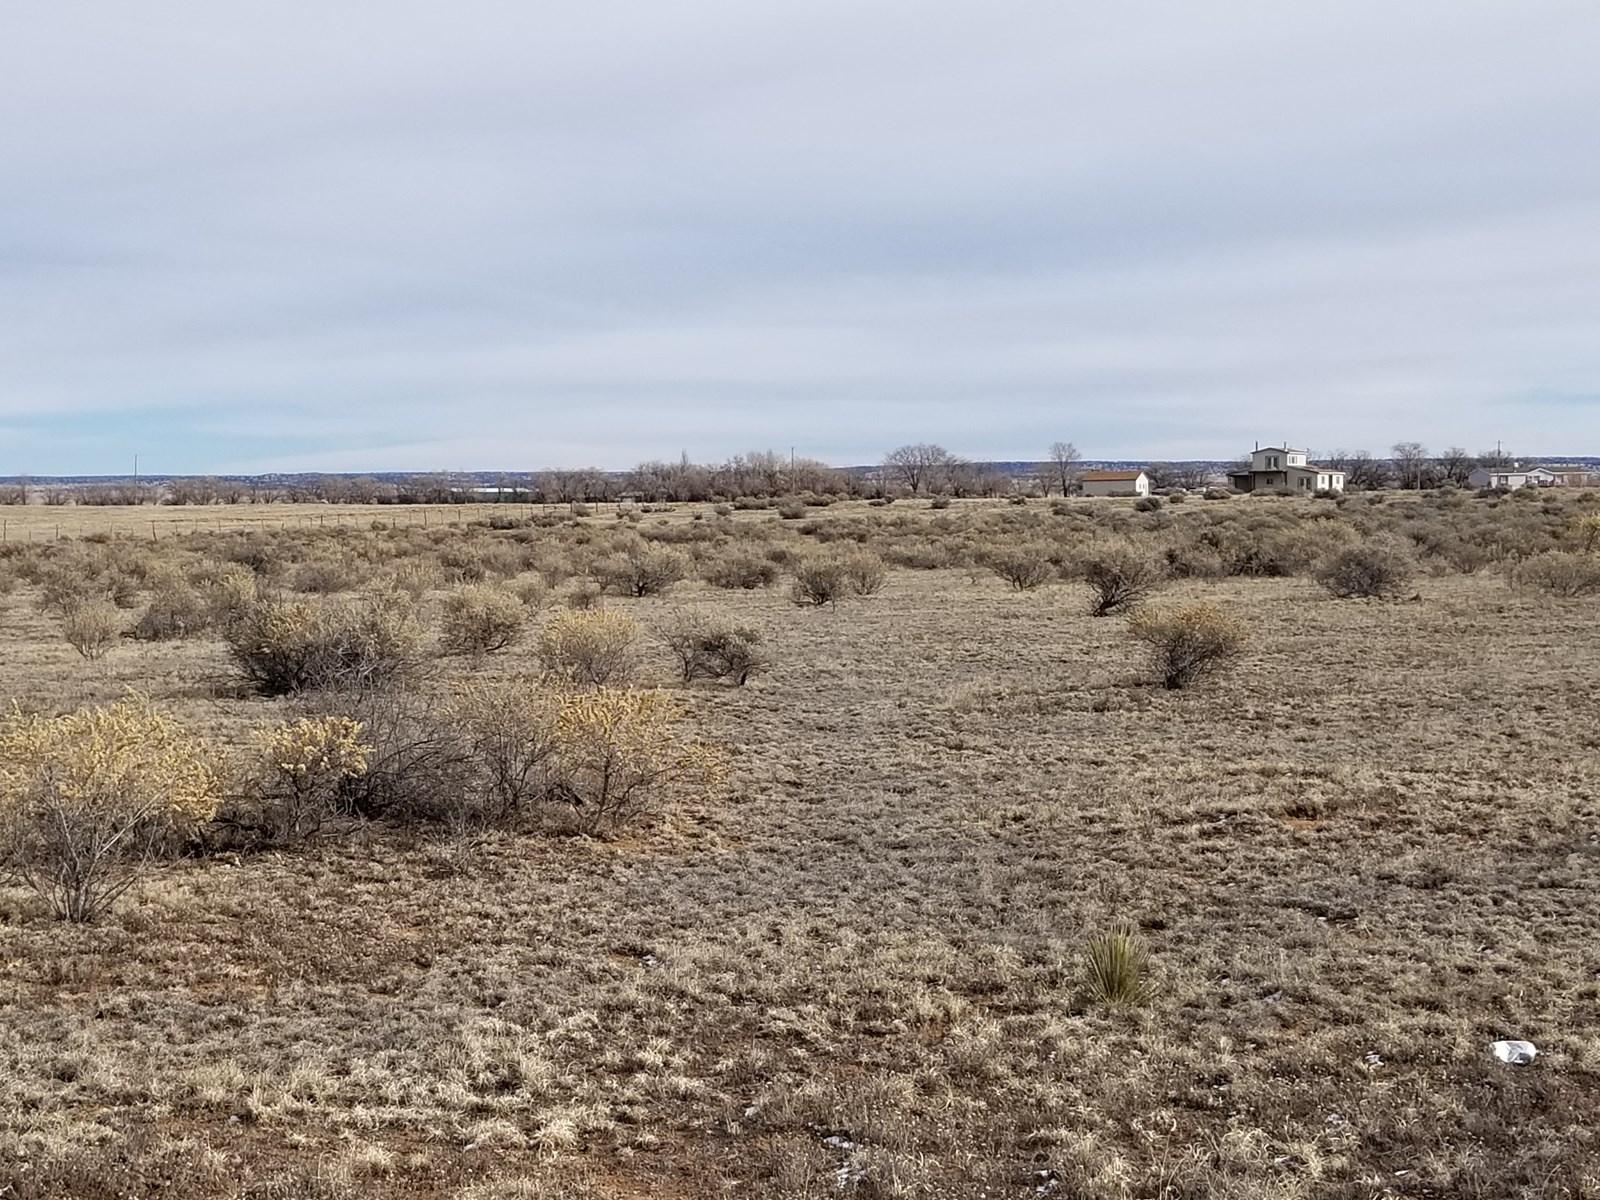 For Sale Estancia Valley NM Home Site Acreage By Moriarty